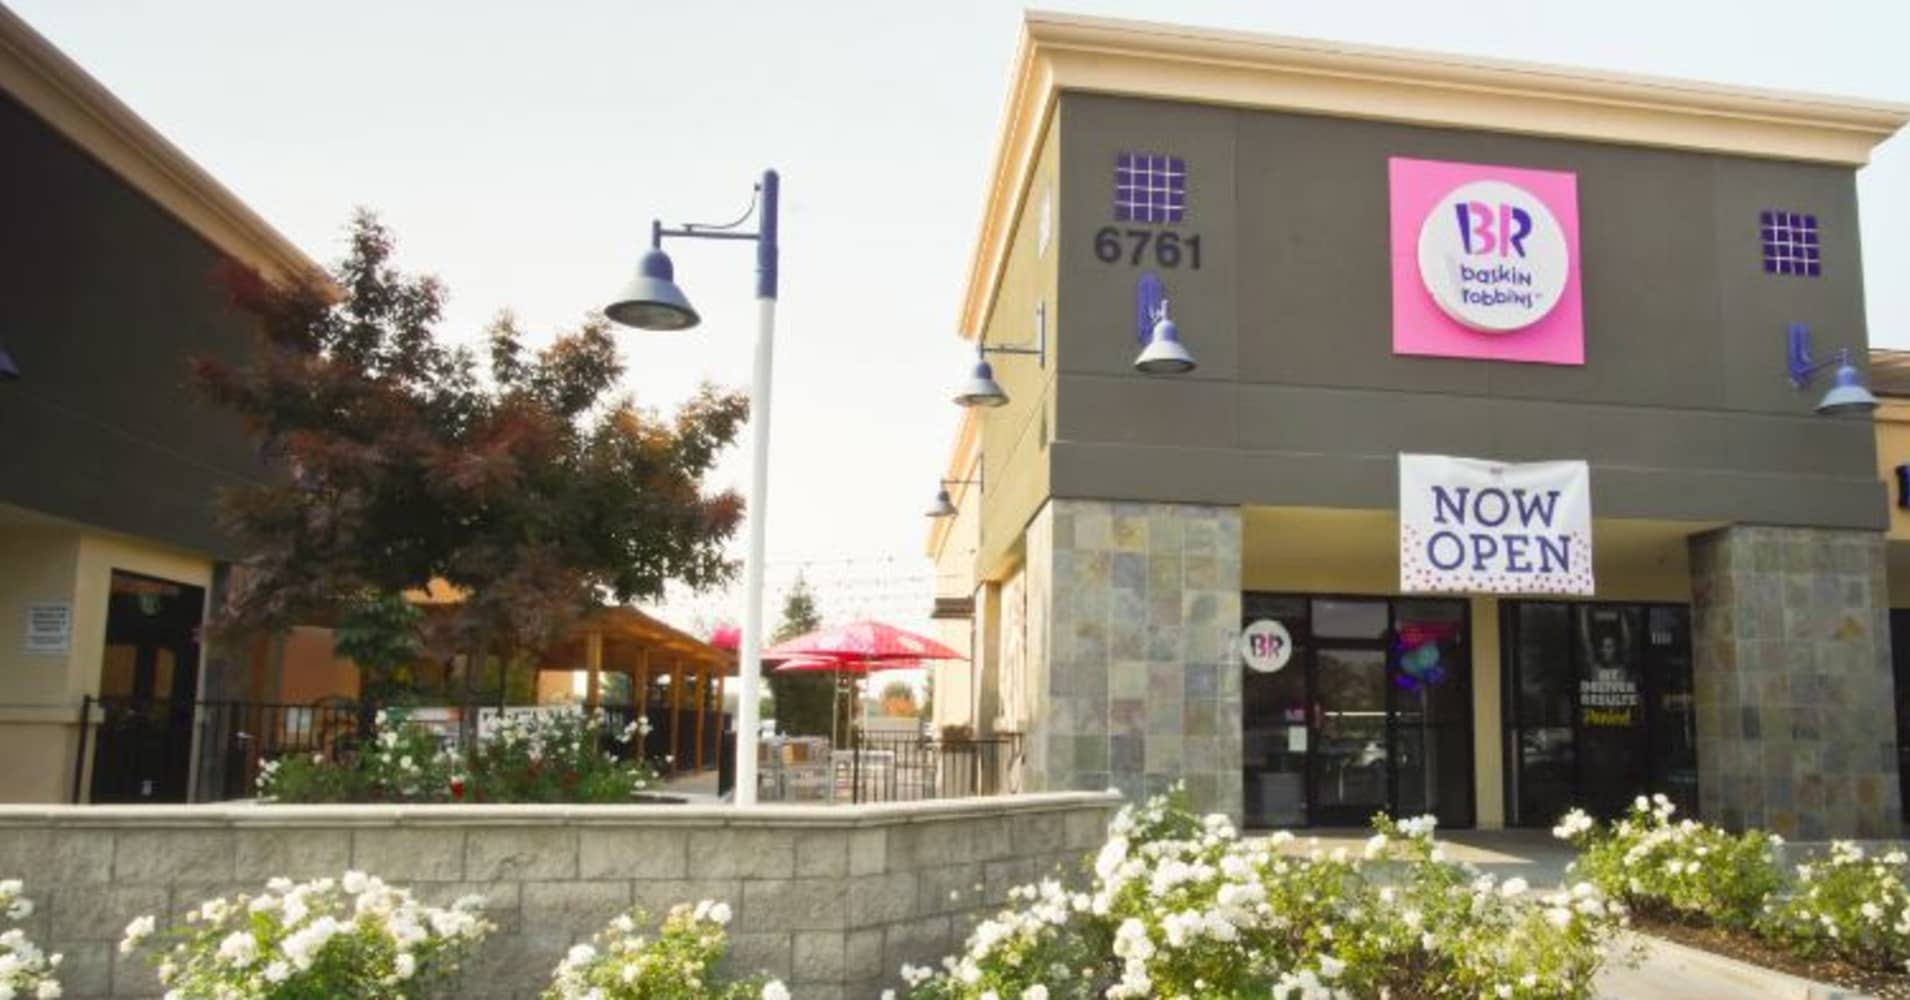 Exterior view of a Baskins Robbins store.